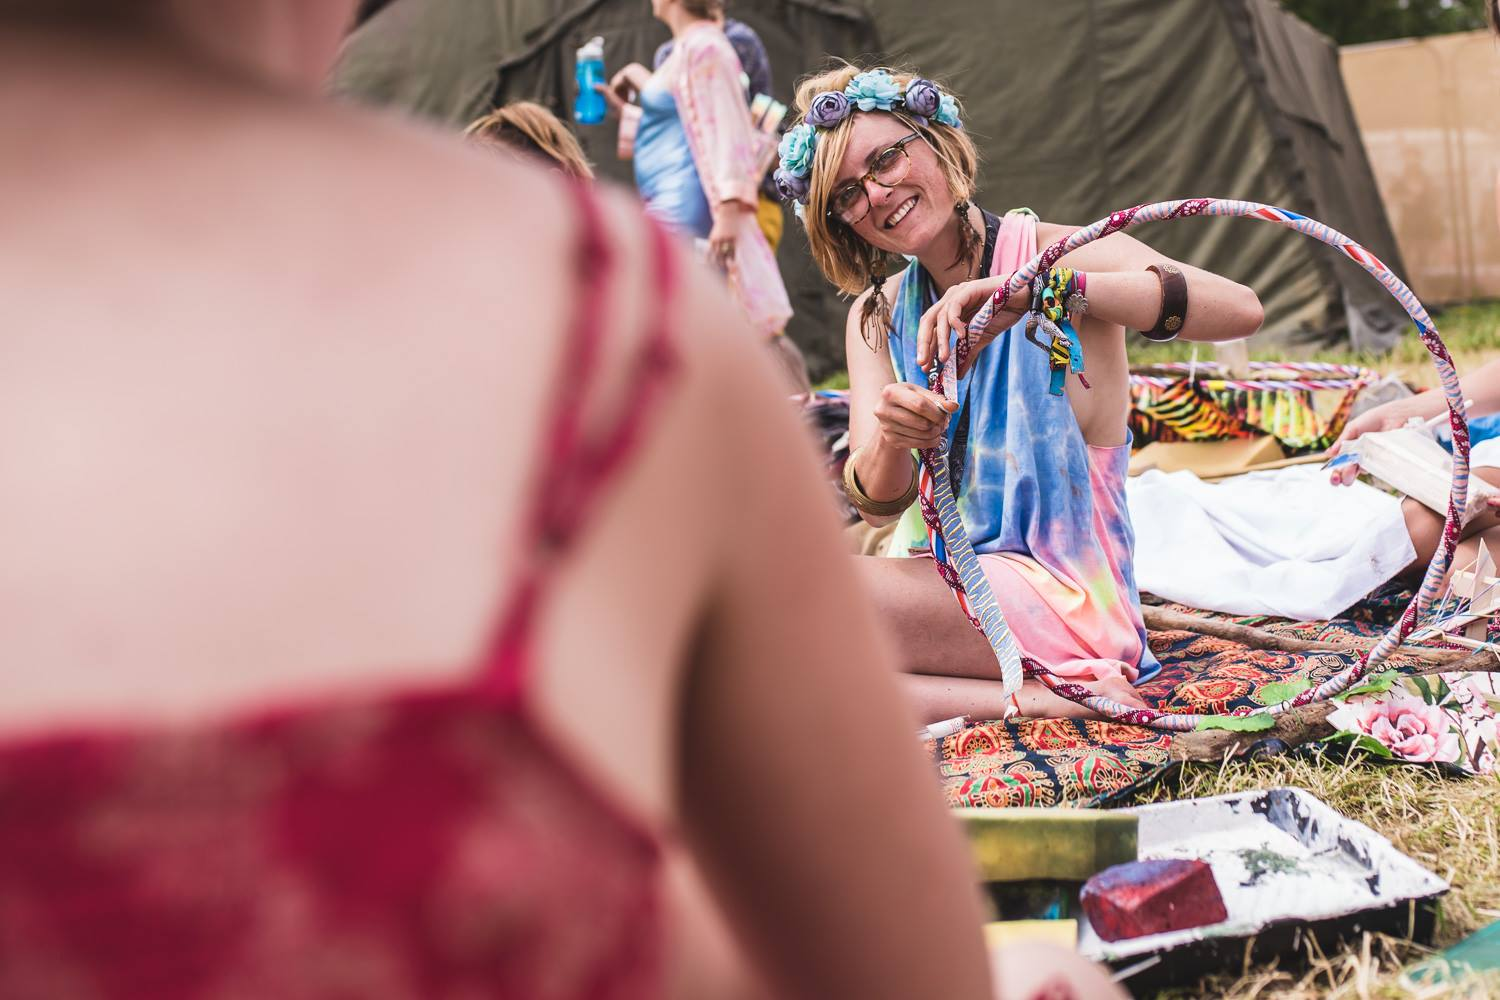 Guest Post: What it's like to do décor at festivals